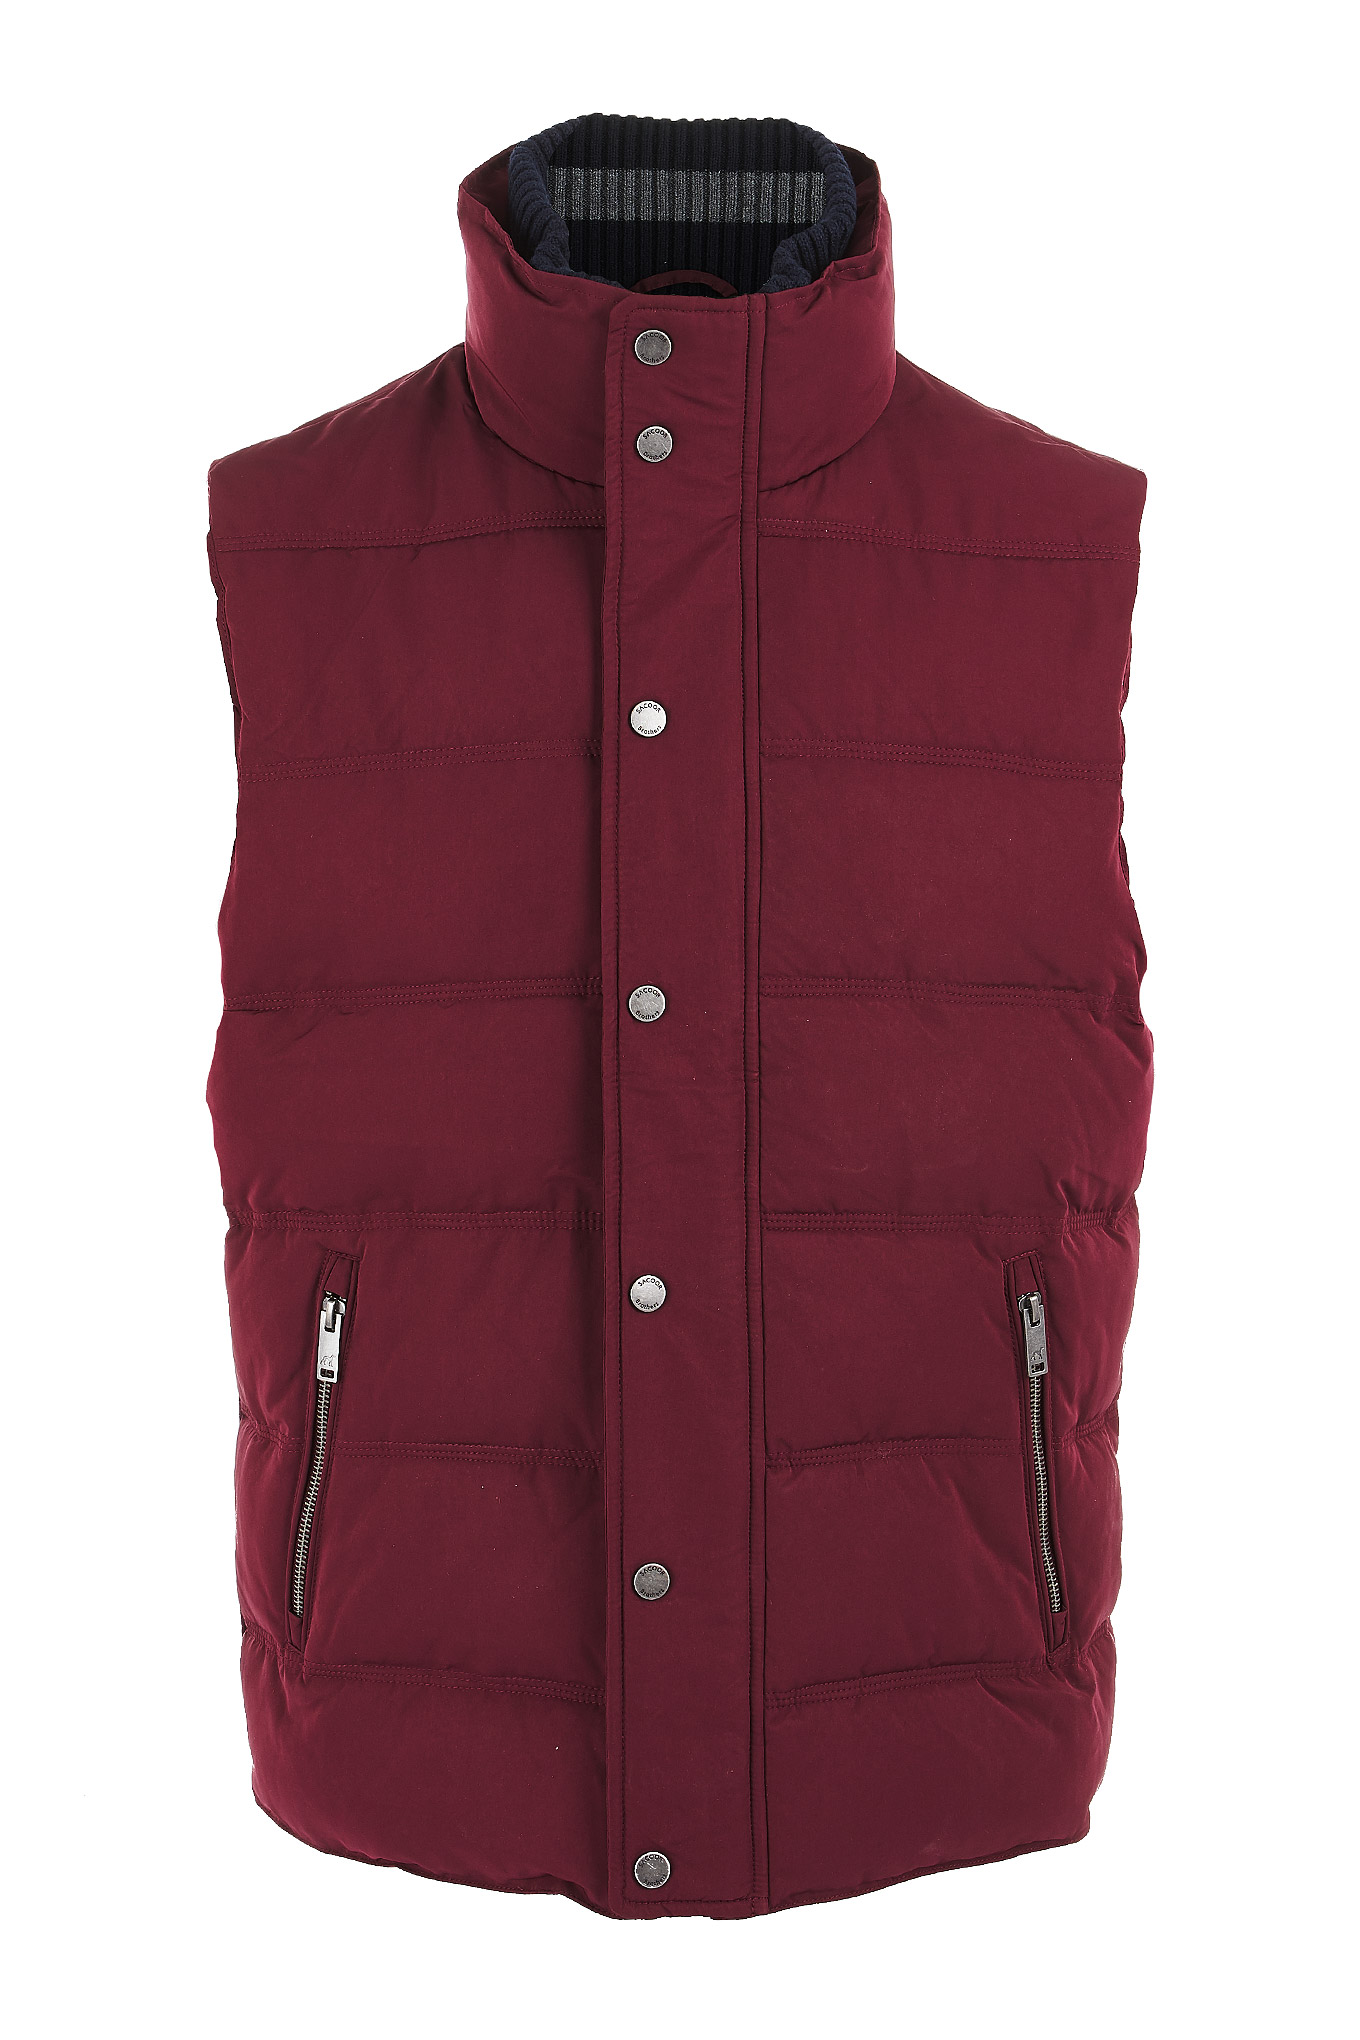 Waist Coat Plum Casual Man